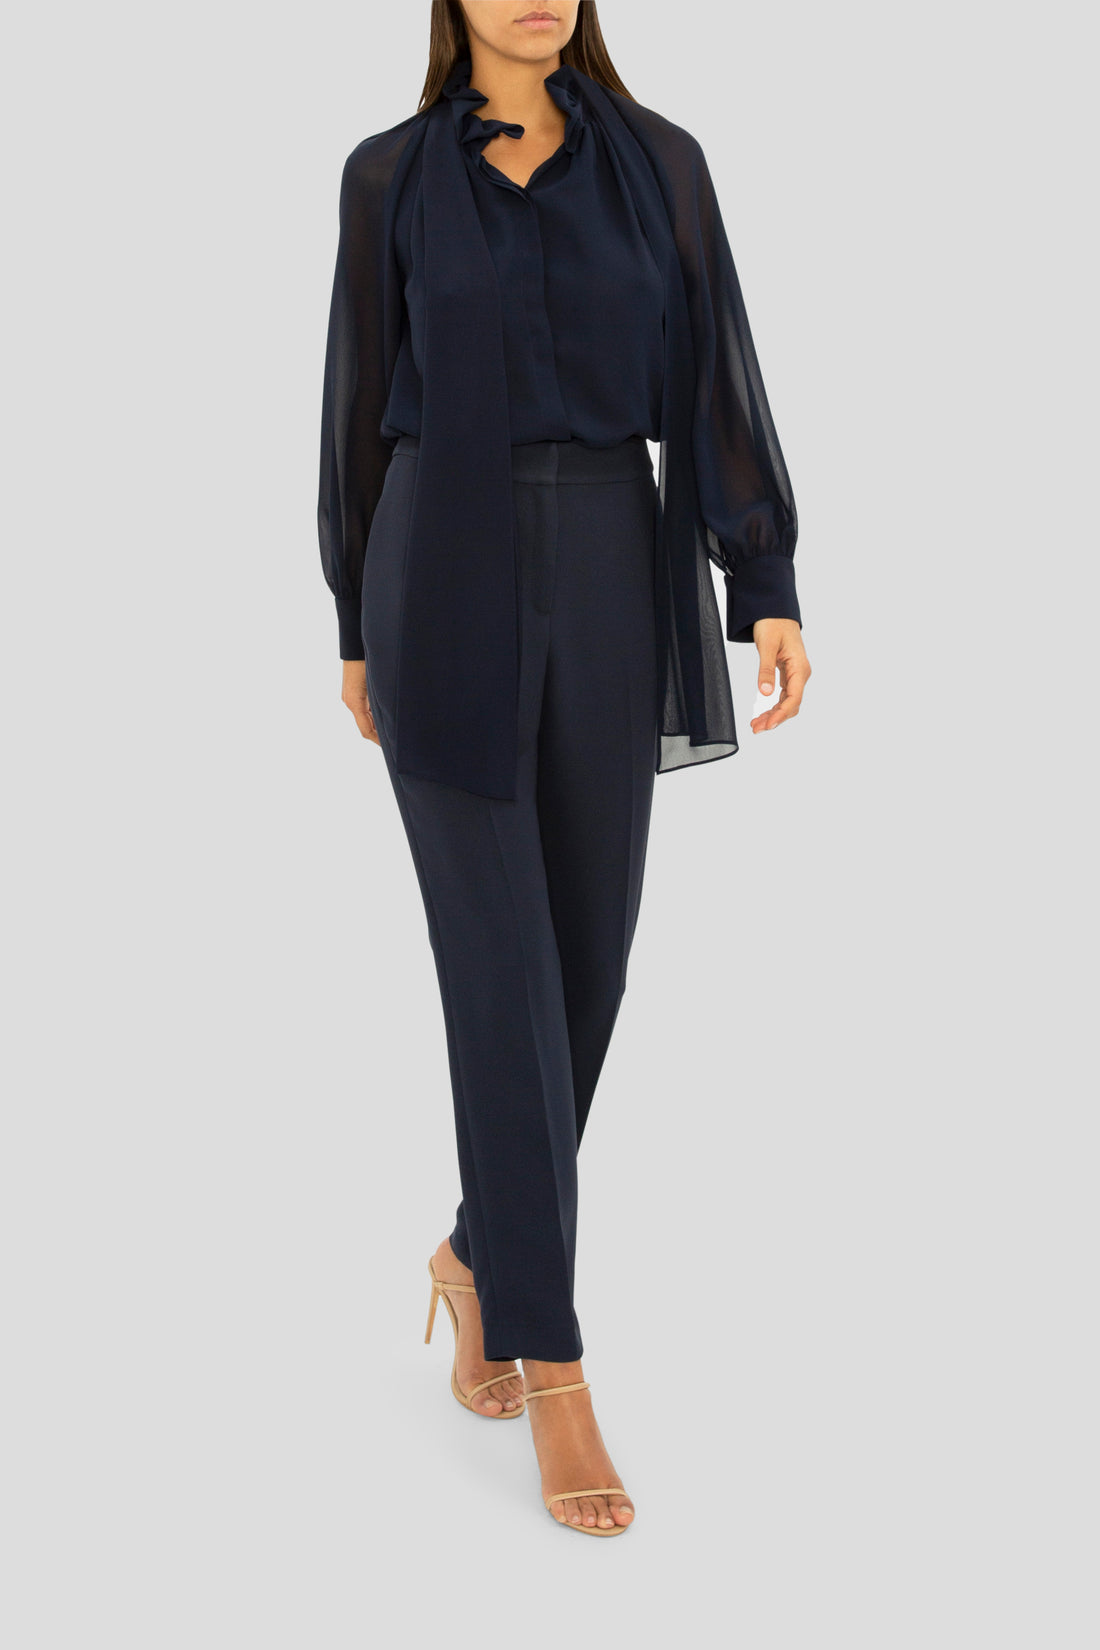 THE NAVY SO CHIC SHIRT